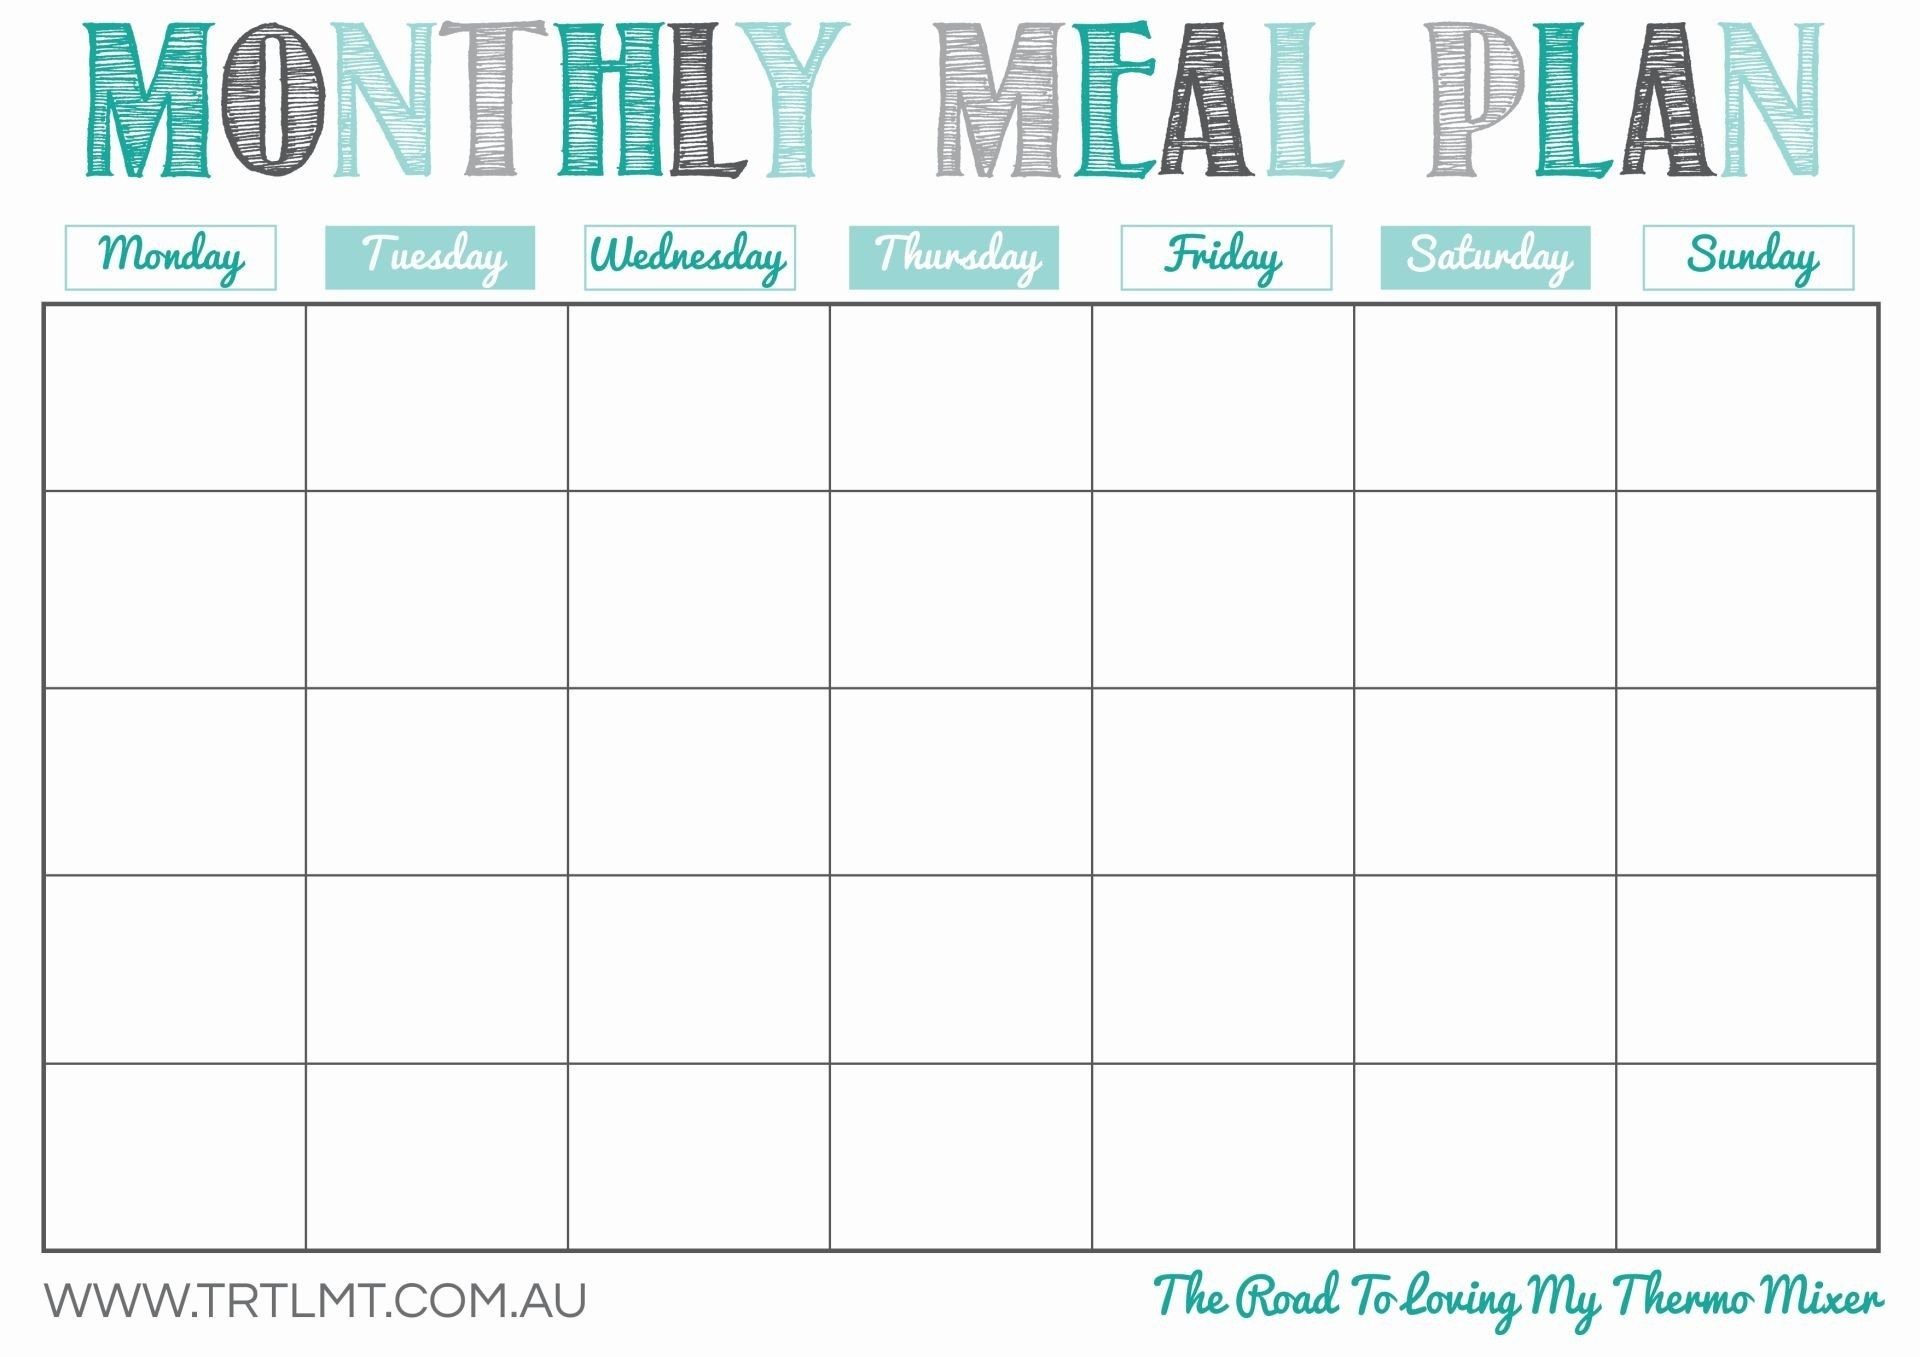 image relating to Printable Meal Plan named Regular Evening meal Application template printable. undated consequently by yourself can retain the services of